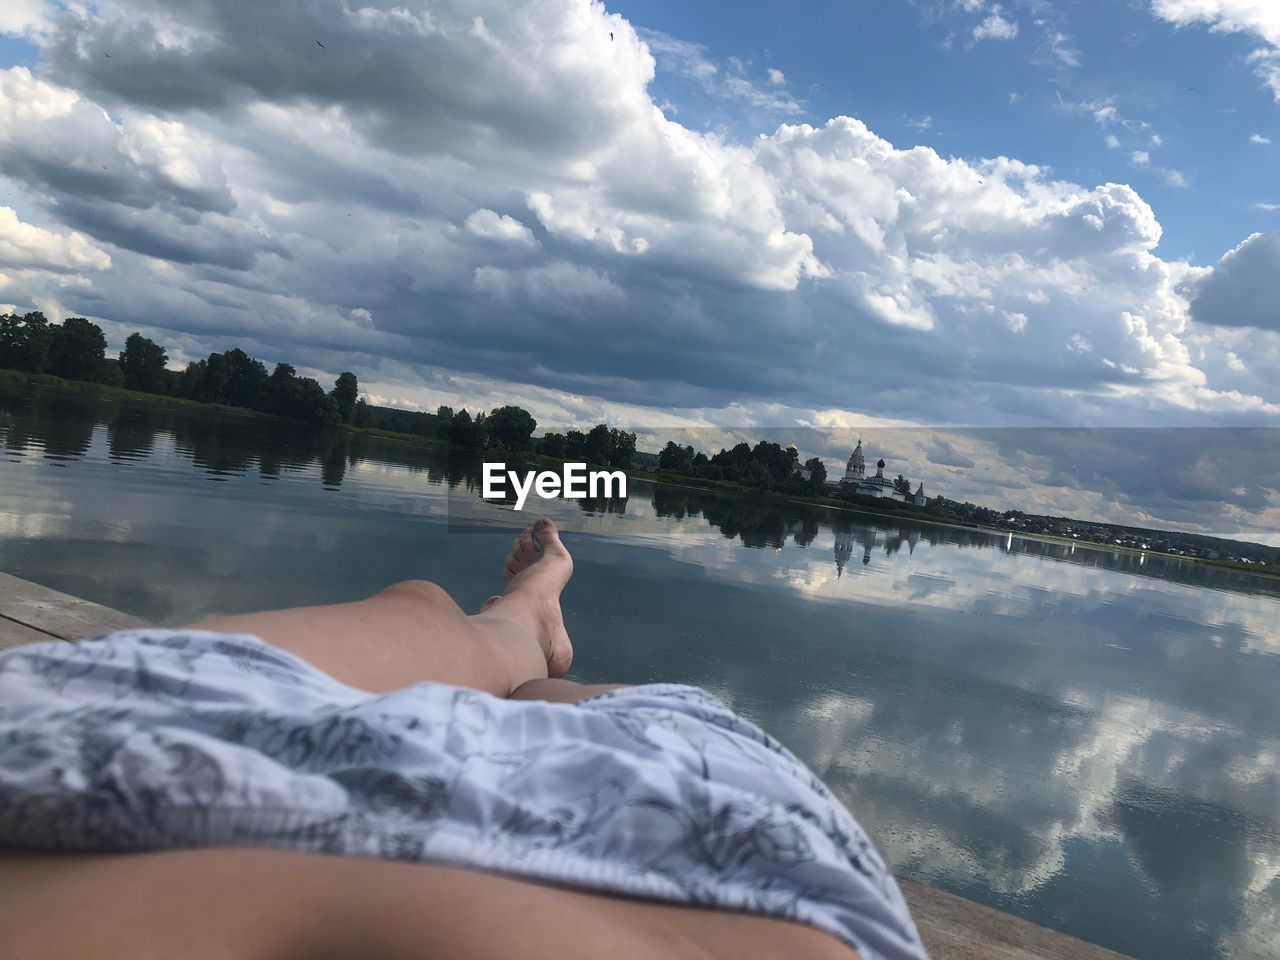 cloud - sky, sky, one person, water, human body part, low section, relaxation, body part, real people, human leg, leisure activity, nature, lifestyles, personal perspective, day, lake, tranquility, barefoot, human foot, outdoors, swimming pool